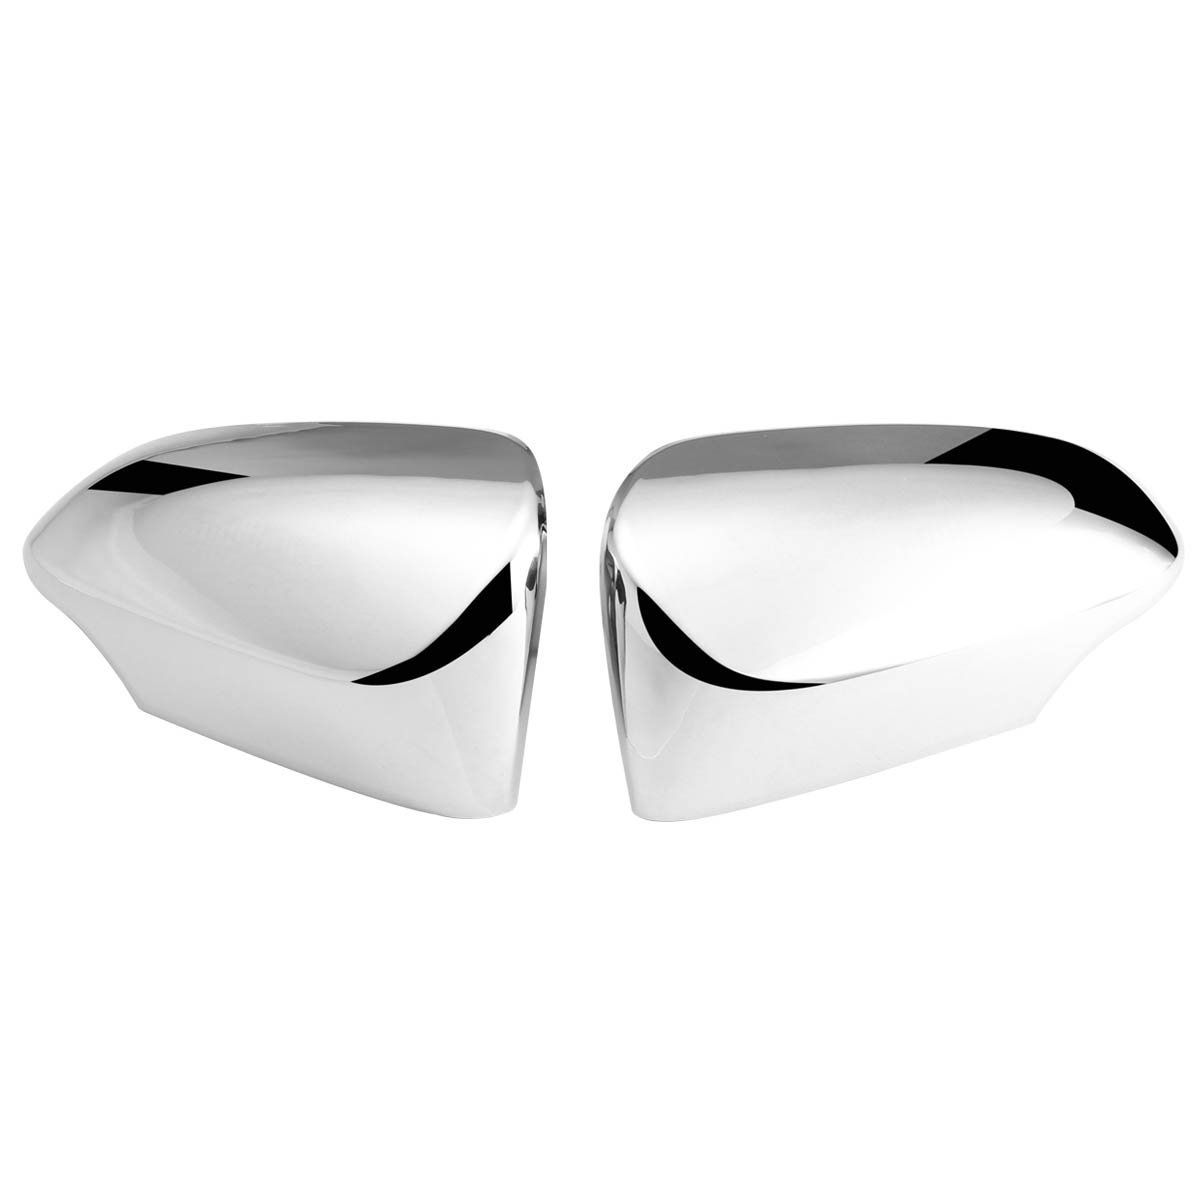 SIDE MIRROR COVERS FOR DATSUN GO (SET OF 2PCS)